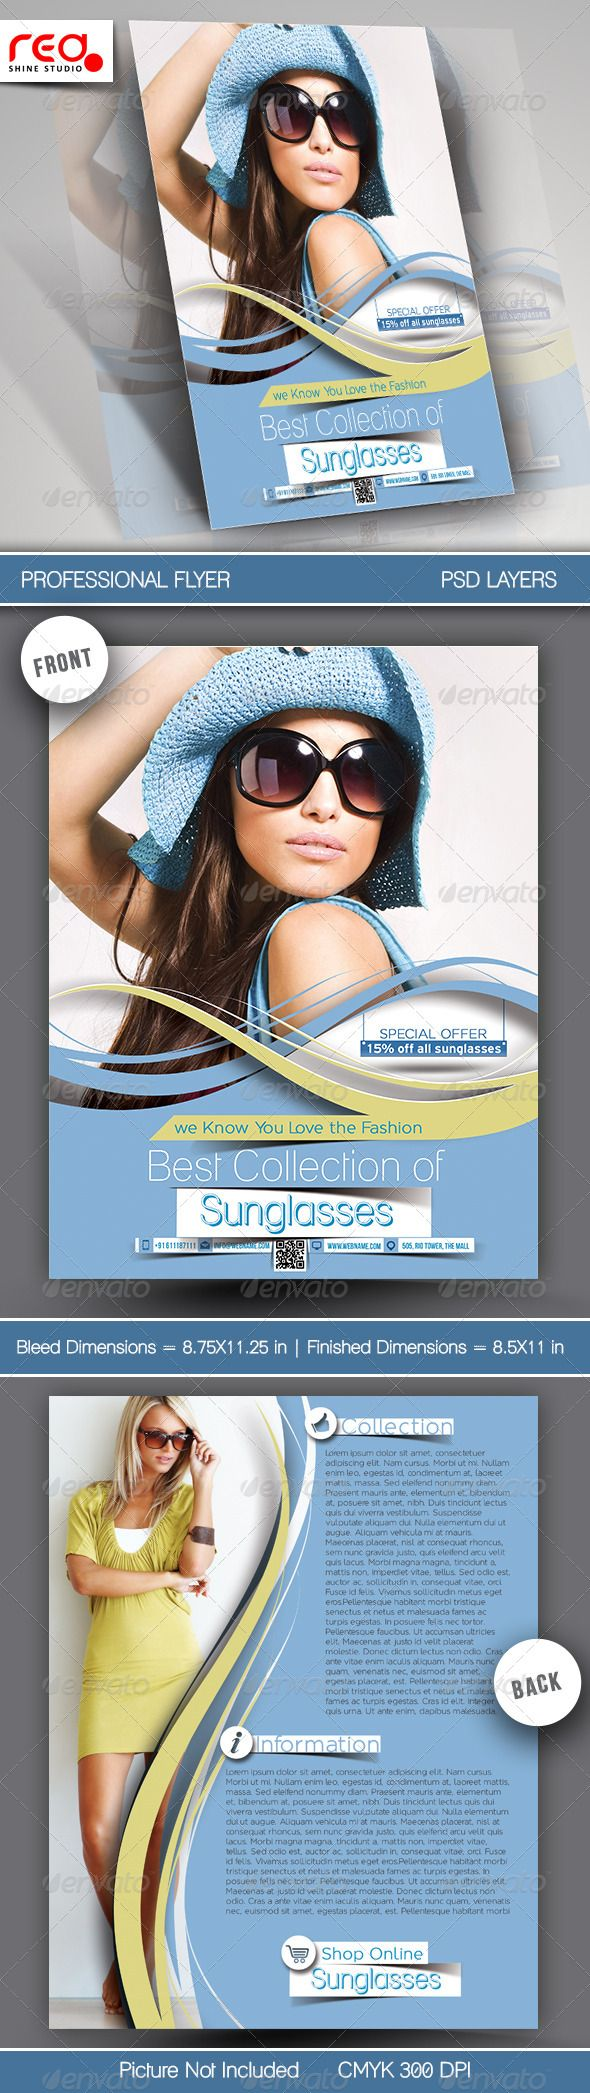 SunGlasses Fashion Store Flyer Template. — Photoshop PSD #sale #eye • Available here → https://graphicriver.net/item/sunglasses-fashion-store-flyer-template/7817917?ref=pxcr